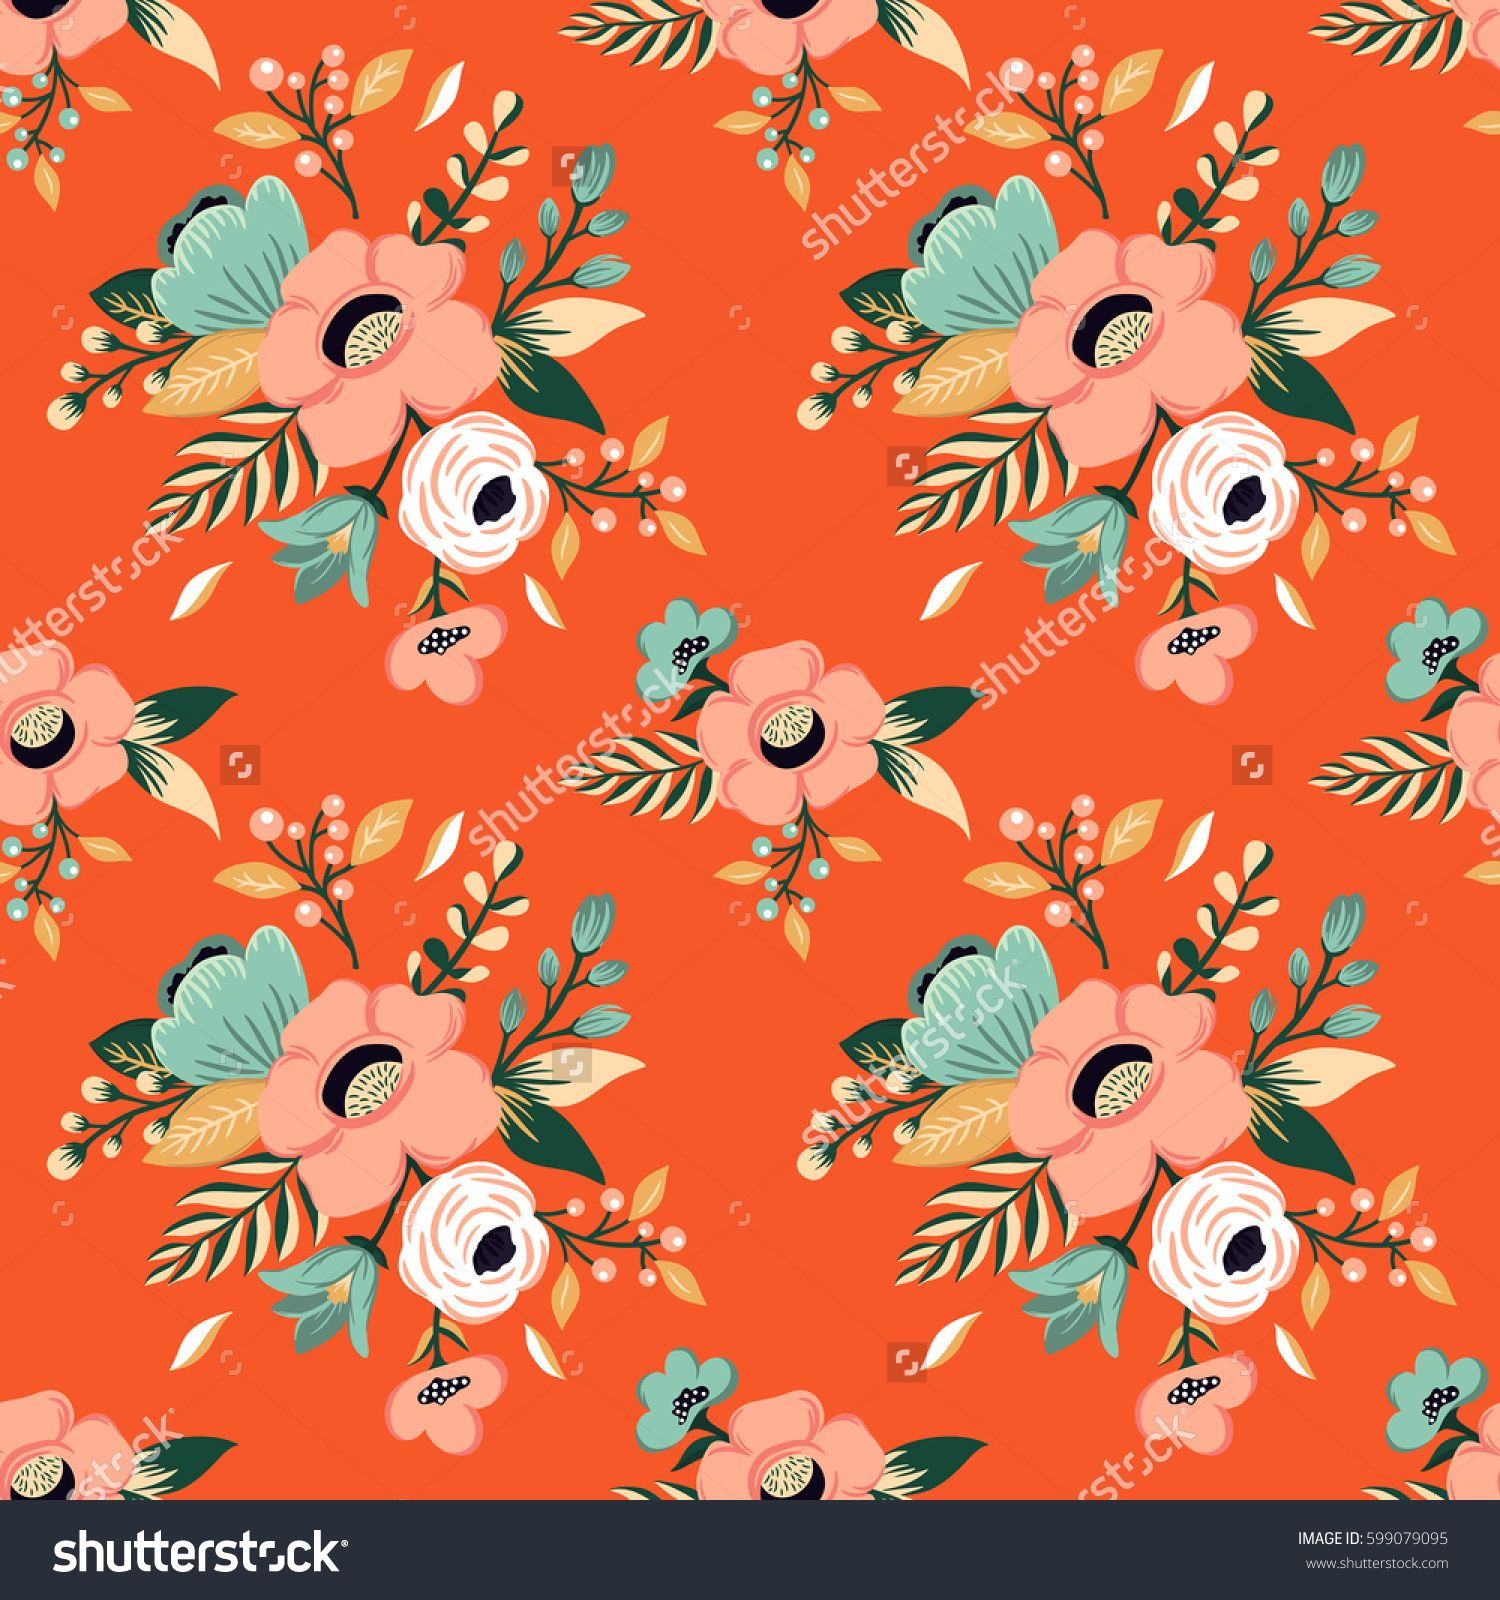 Seamless flower pattern. Colorful vintage floral